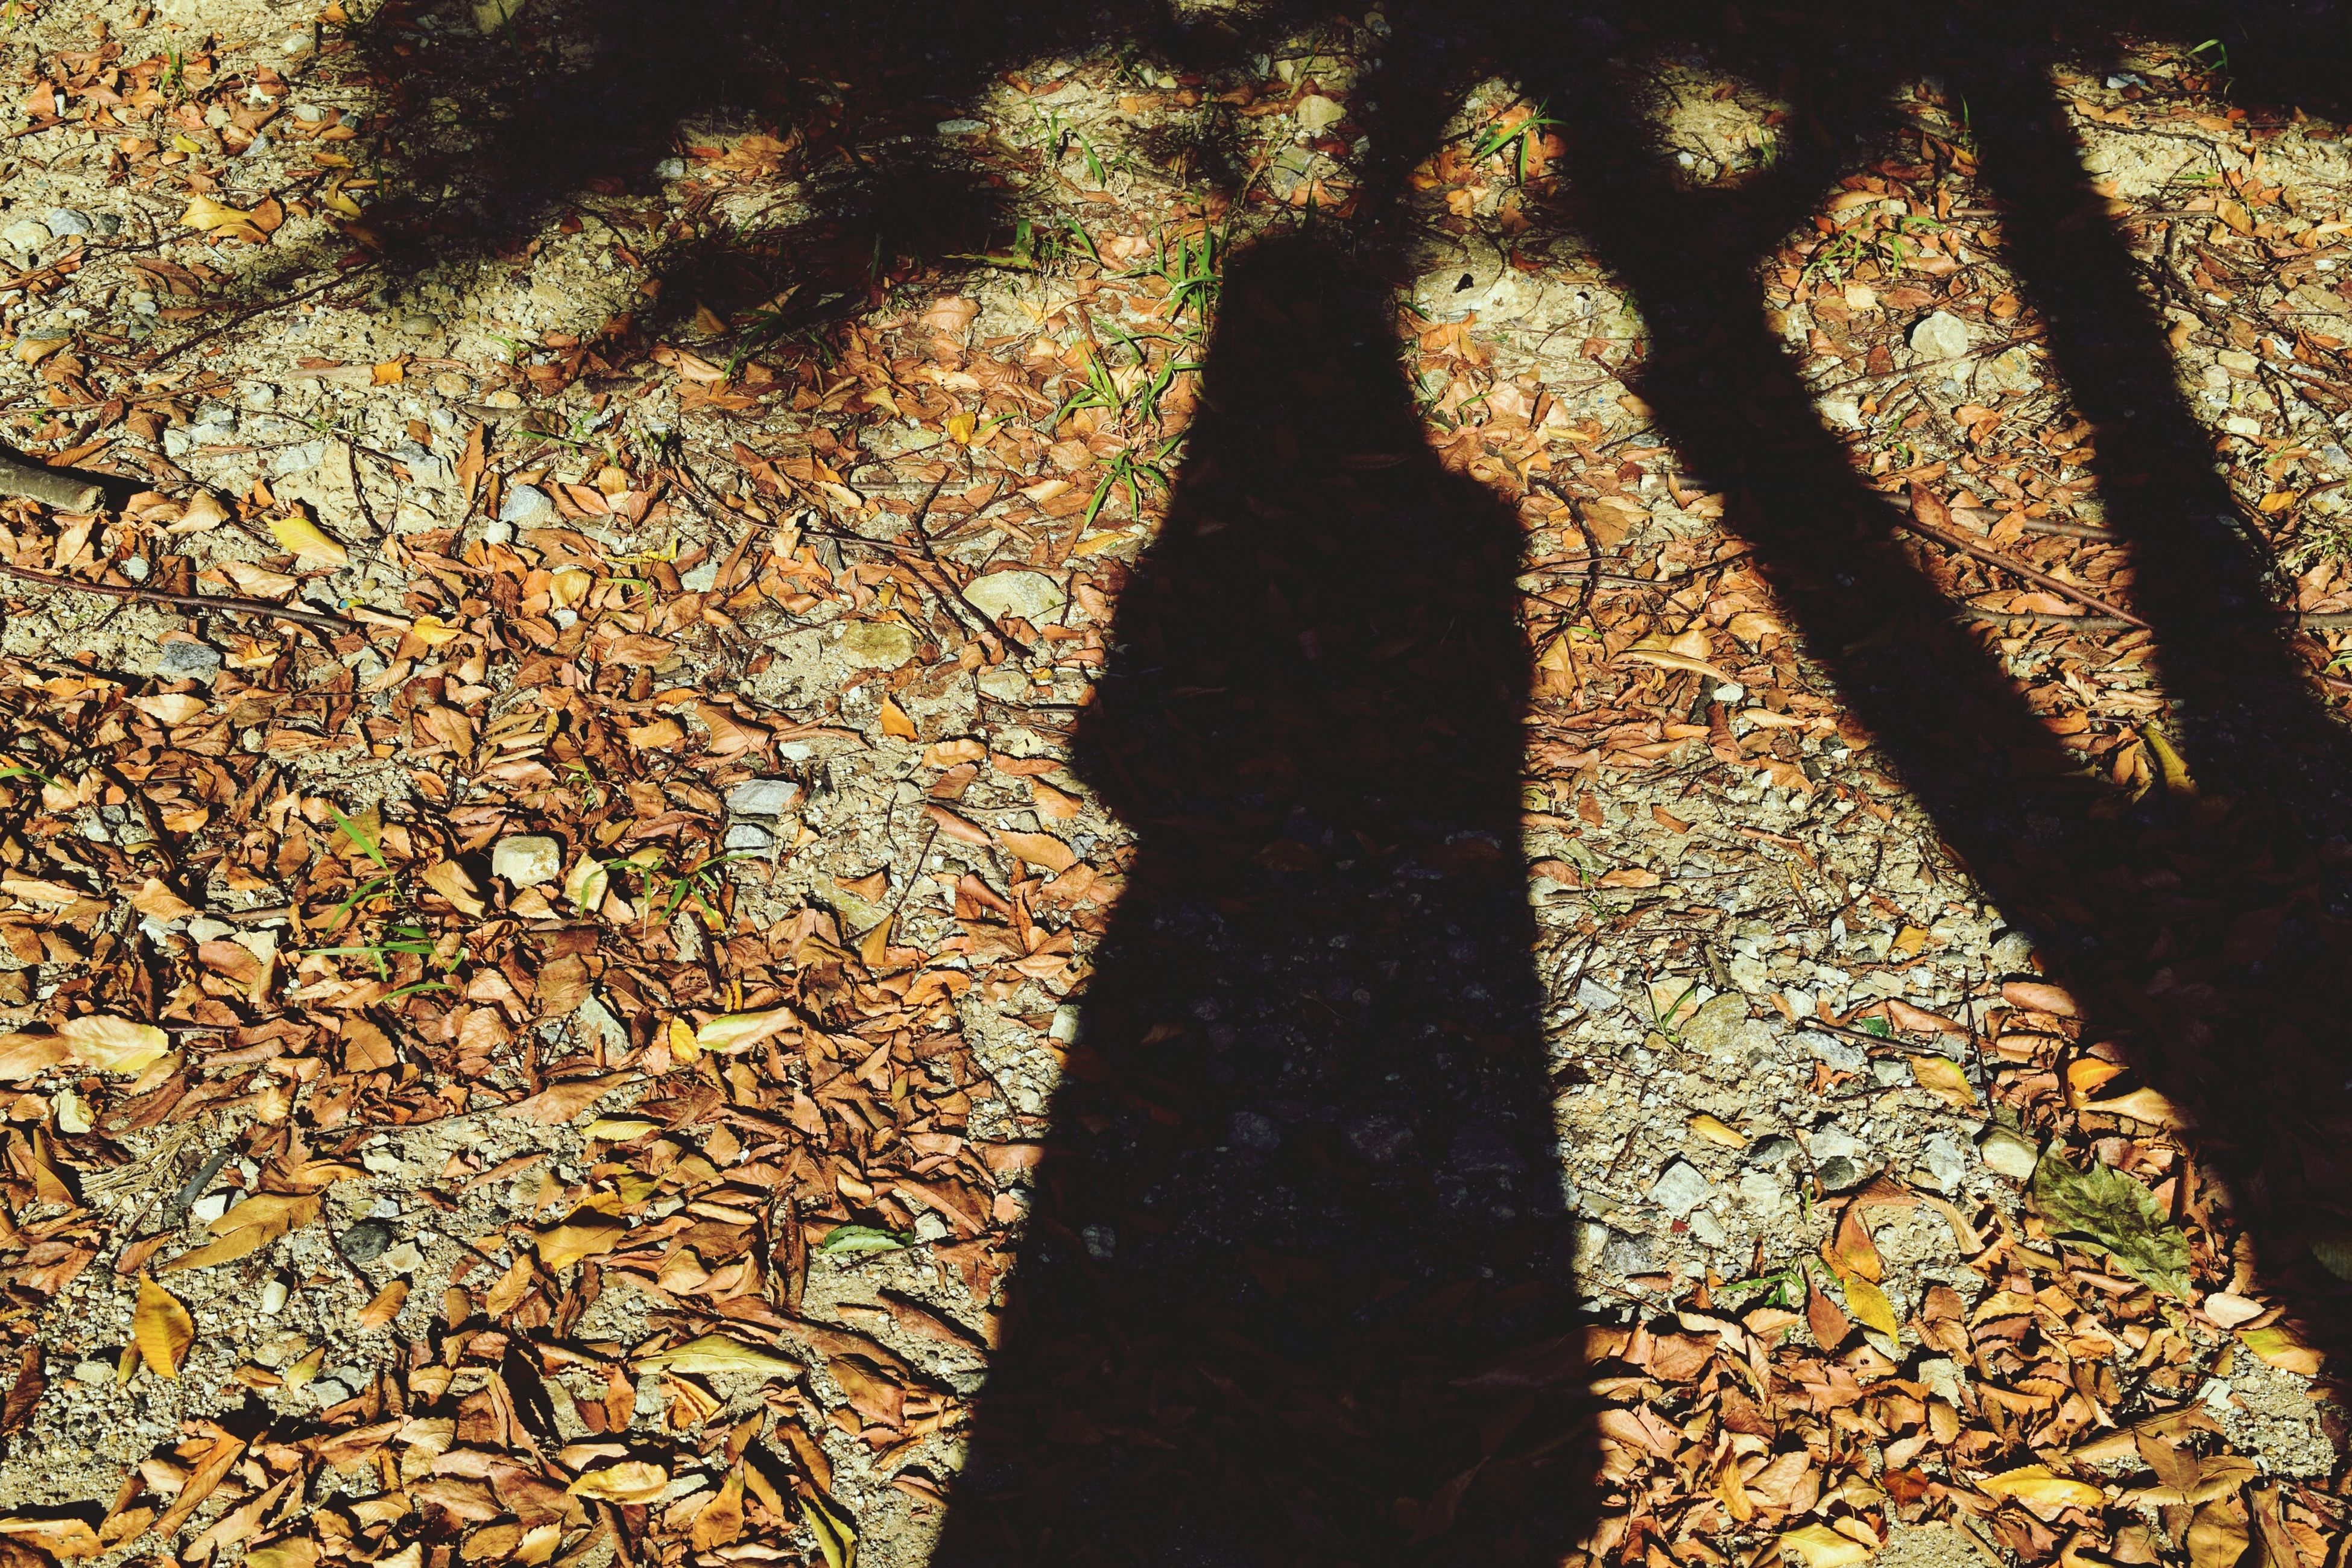 shadow, focus on shadow, sunlight, high angle view, tree, silhouette, nature, growth, leaf, unrecognizable person, outdoors, tranquility, day, tree trunk, branch, lifestyles, autumn, standing